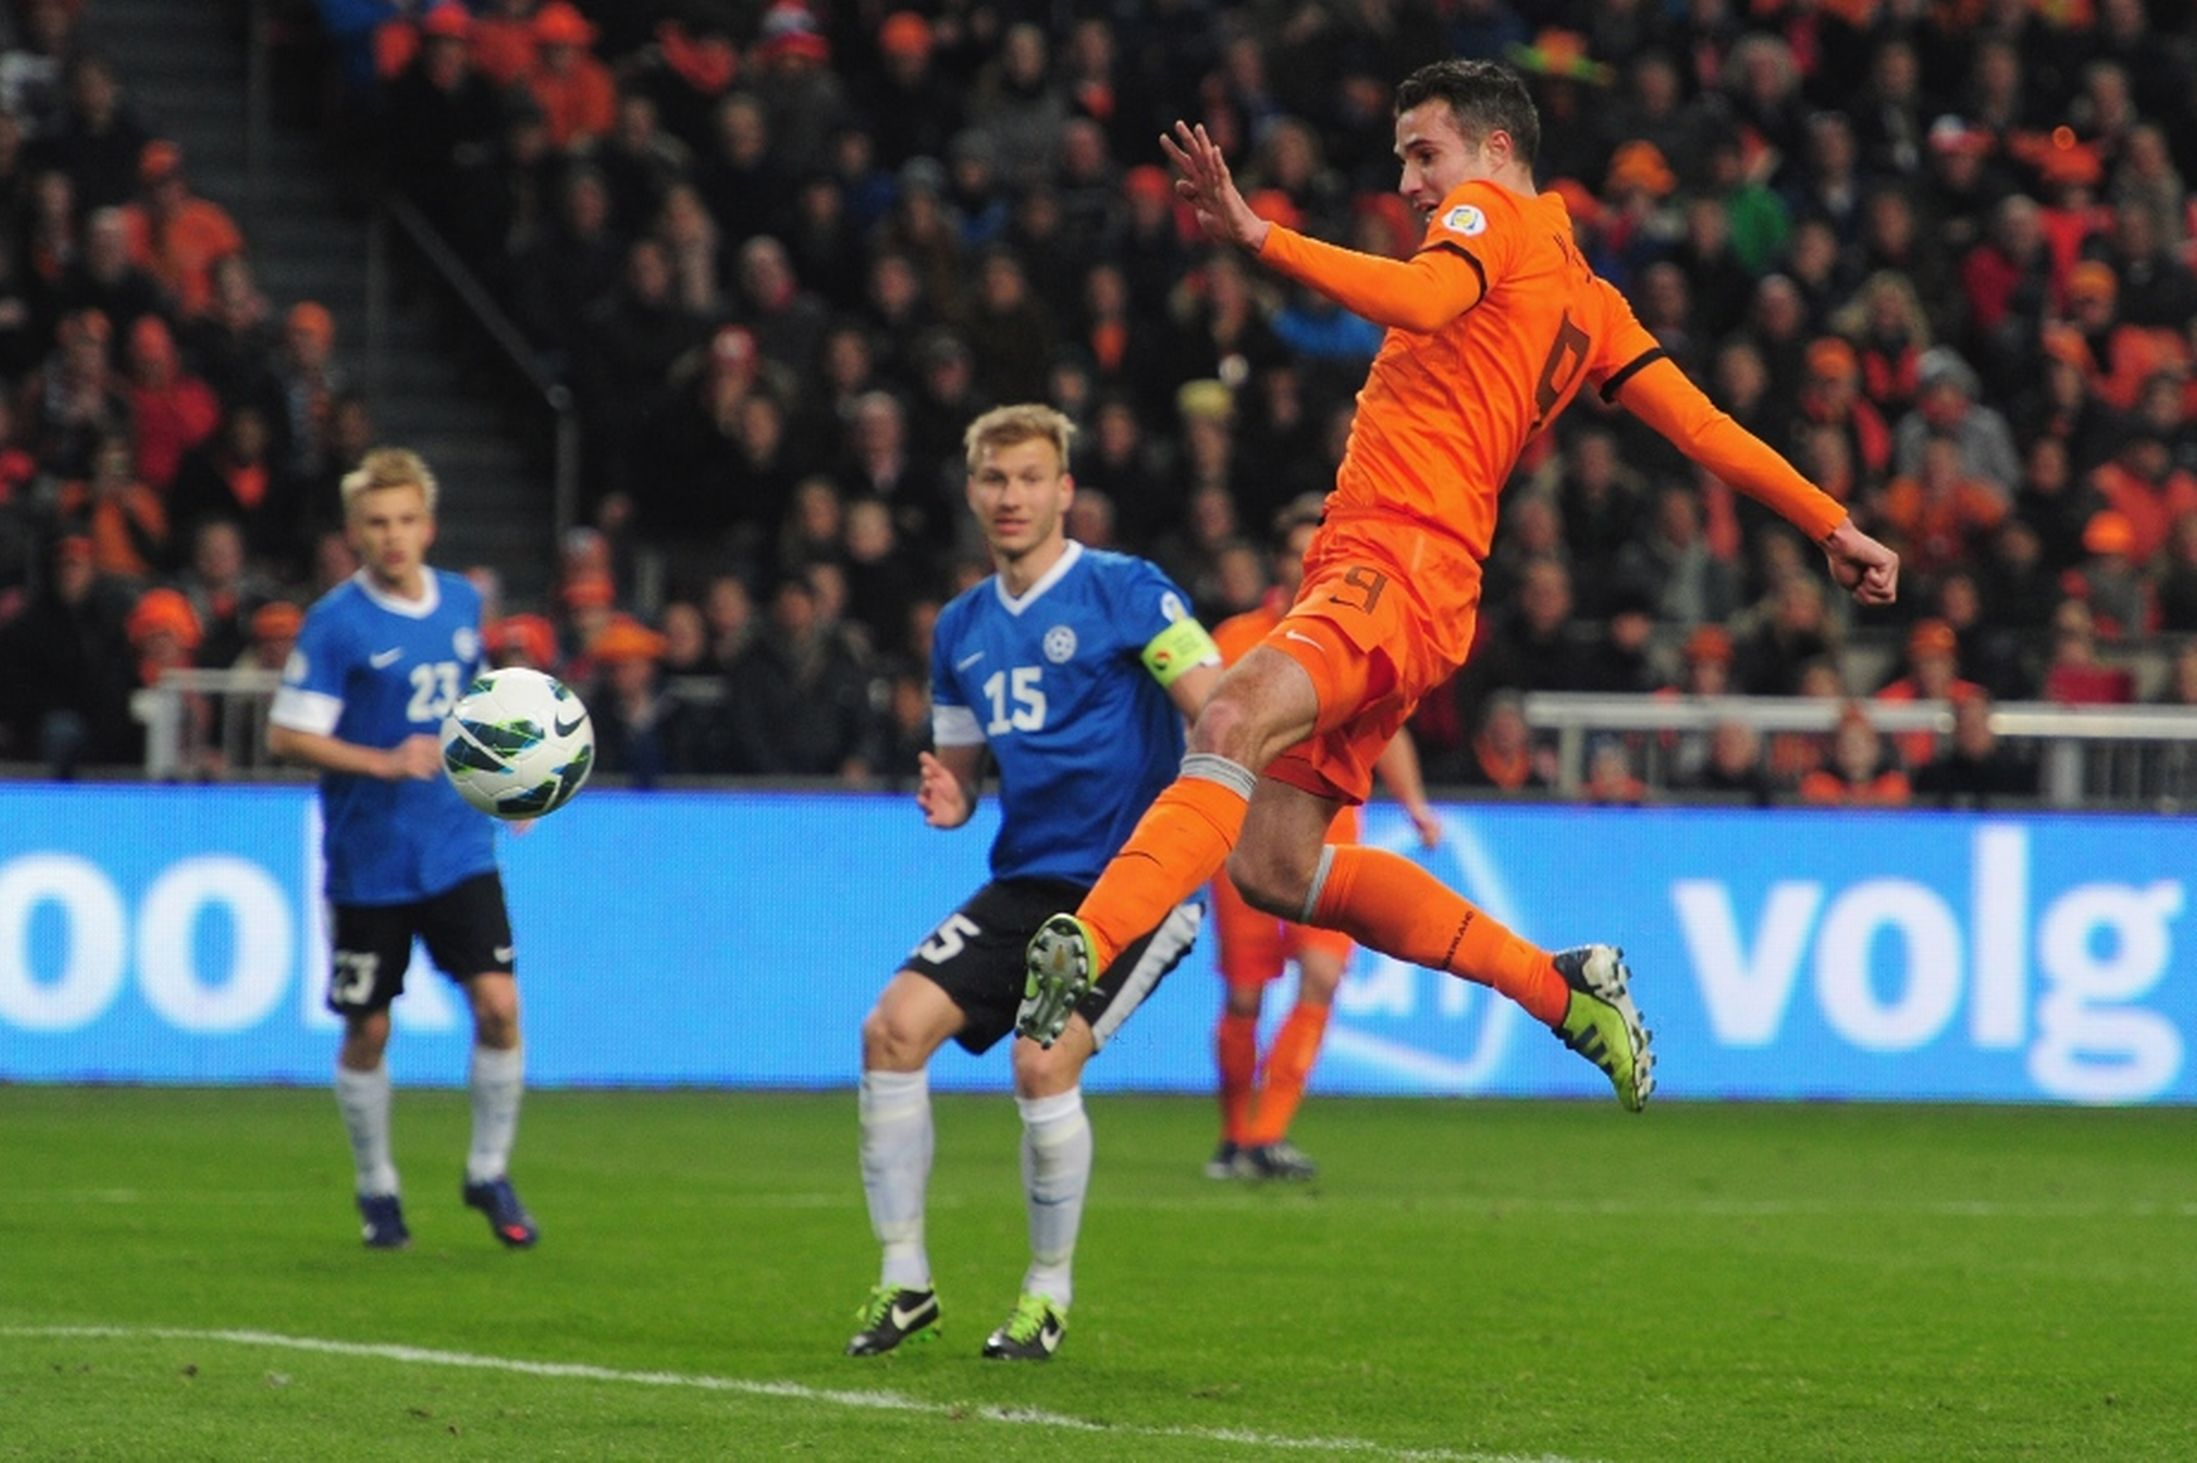 Netherlands Quarter Finals – 2014 World Cup